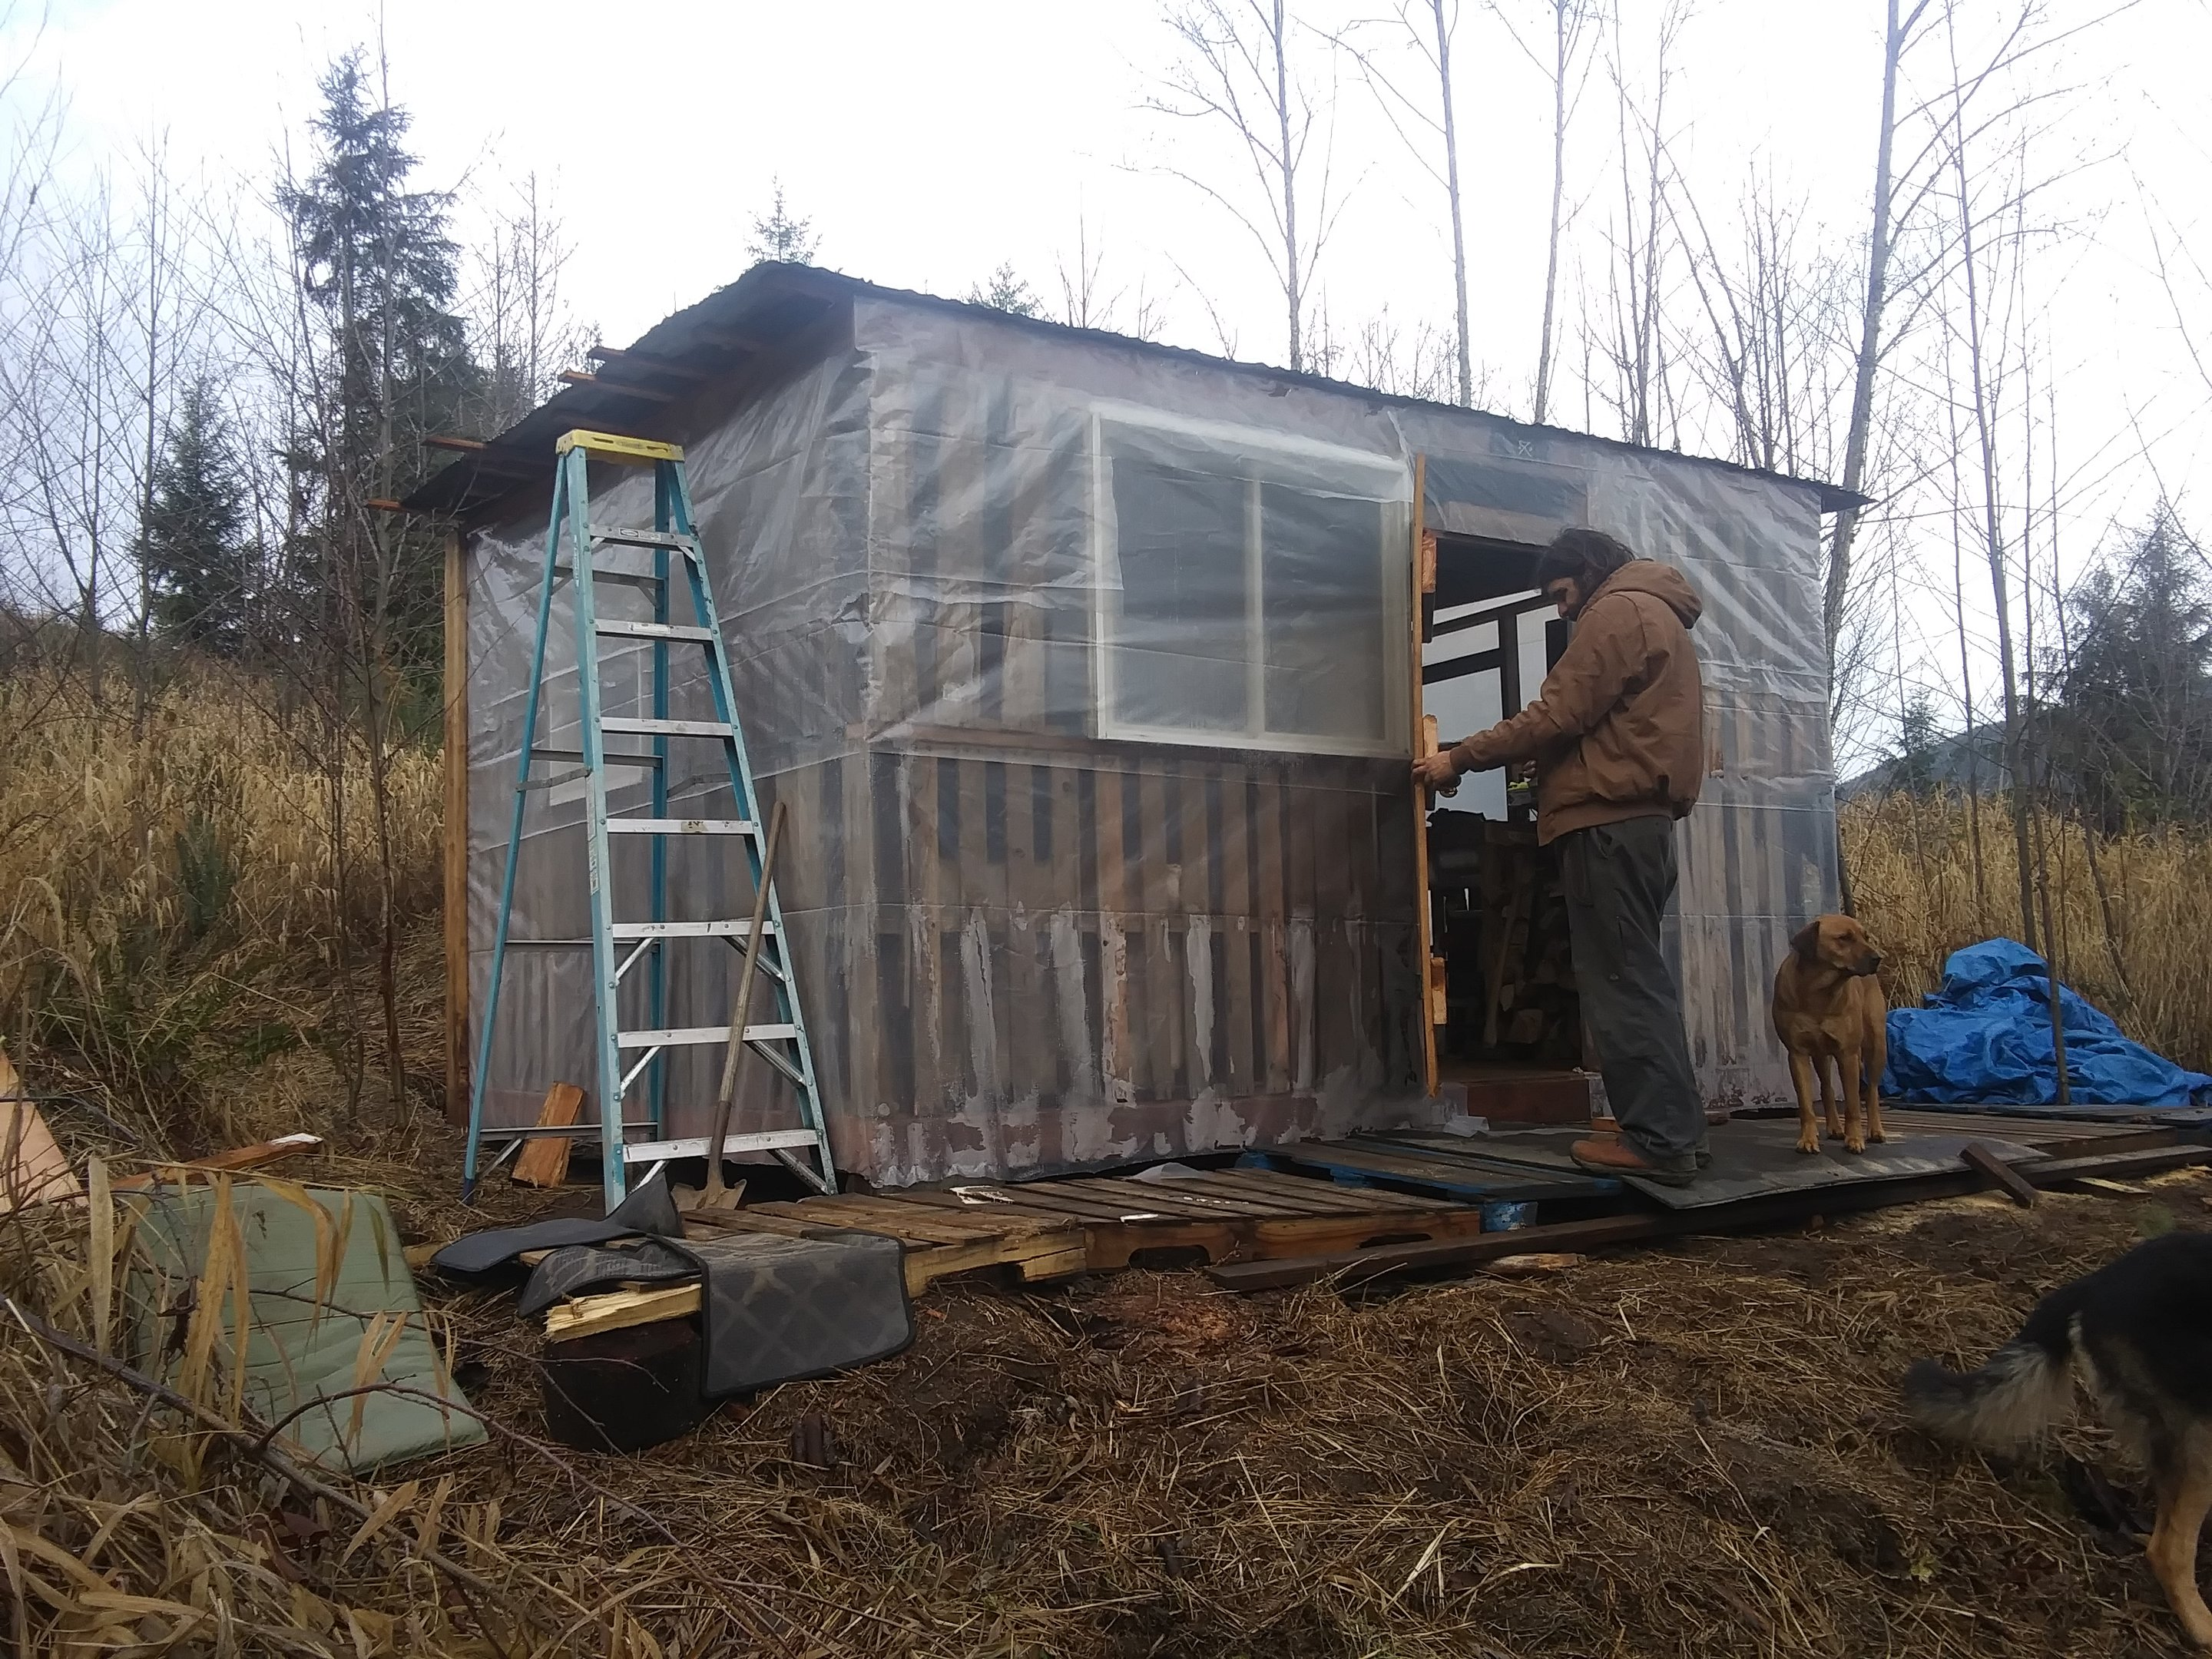 babe-drillin_-jpg.52728_Off-Grid homesteadin' wing'n it yeh_Alternative Housing_Squat the Planet_12:24 PM